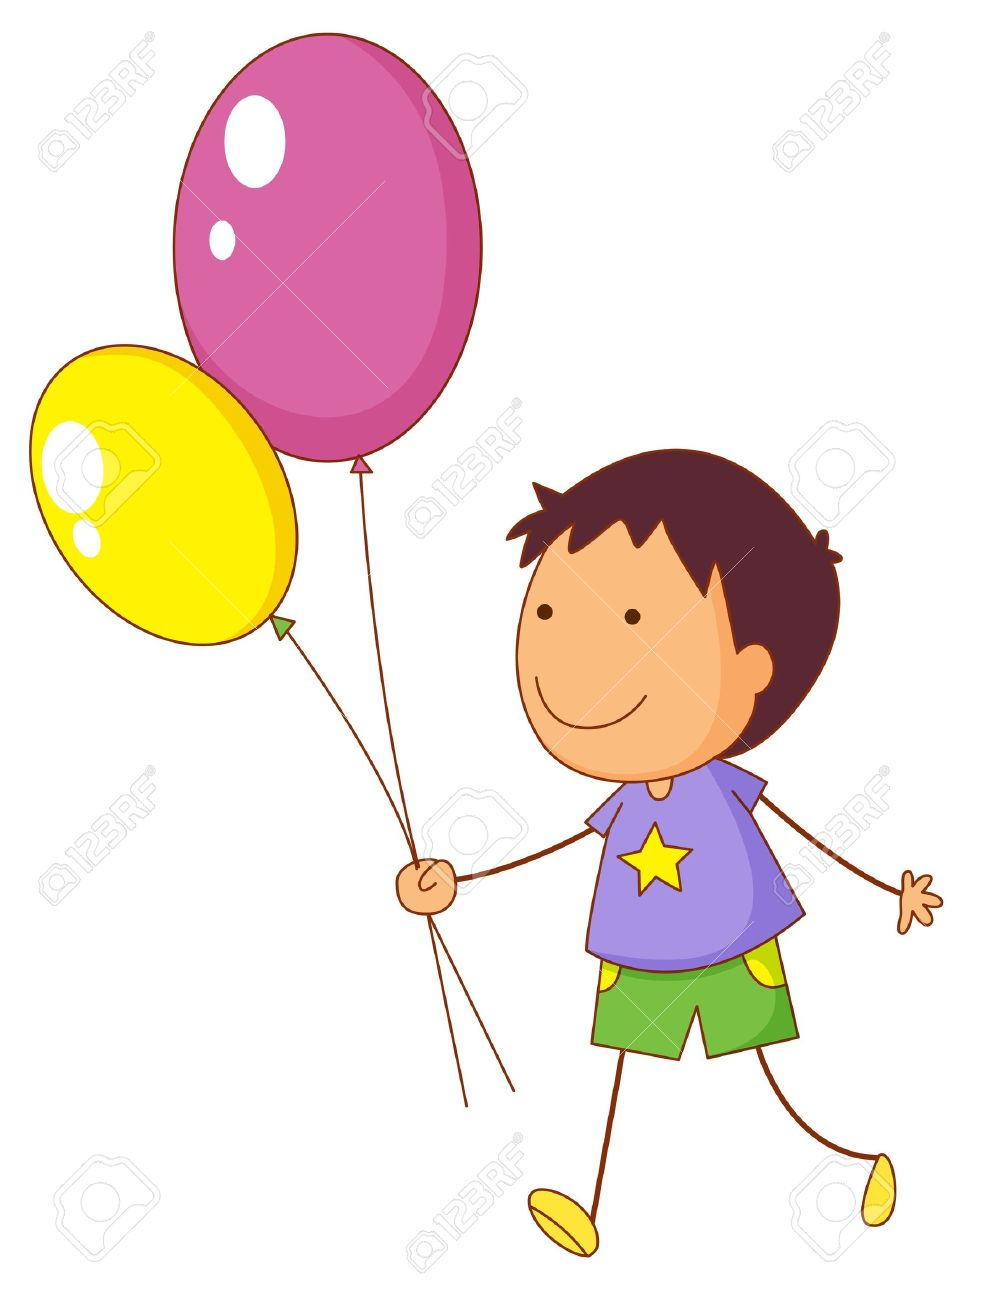 Illustration of a kid holding balloons.